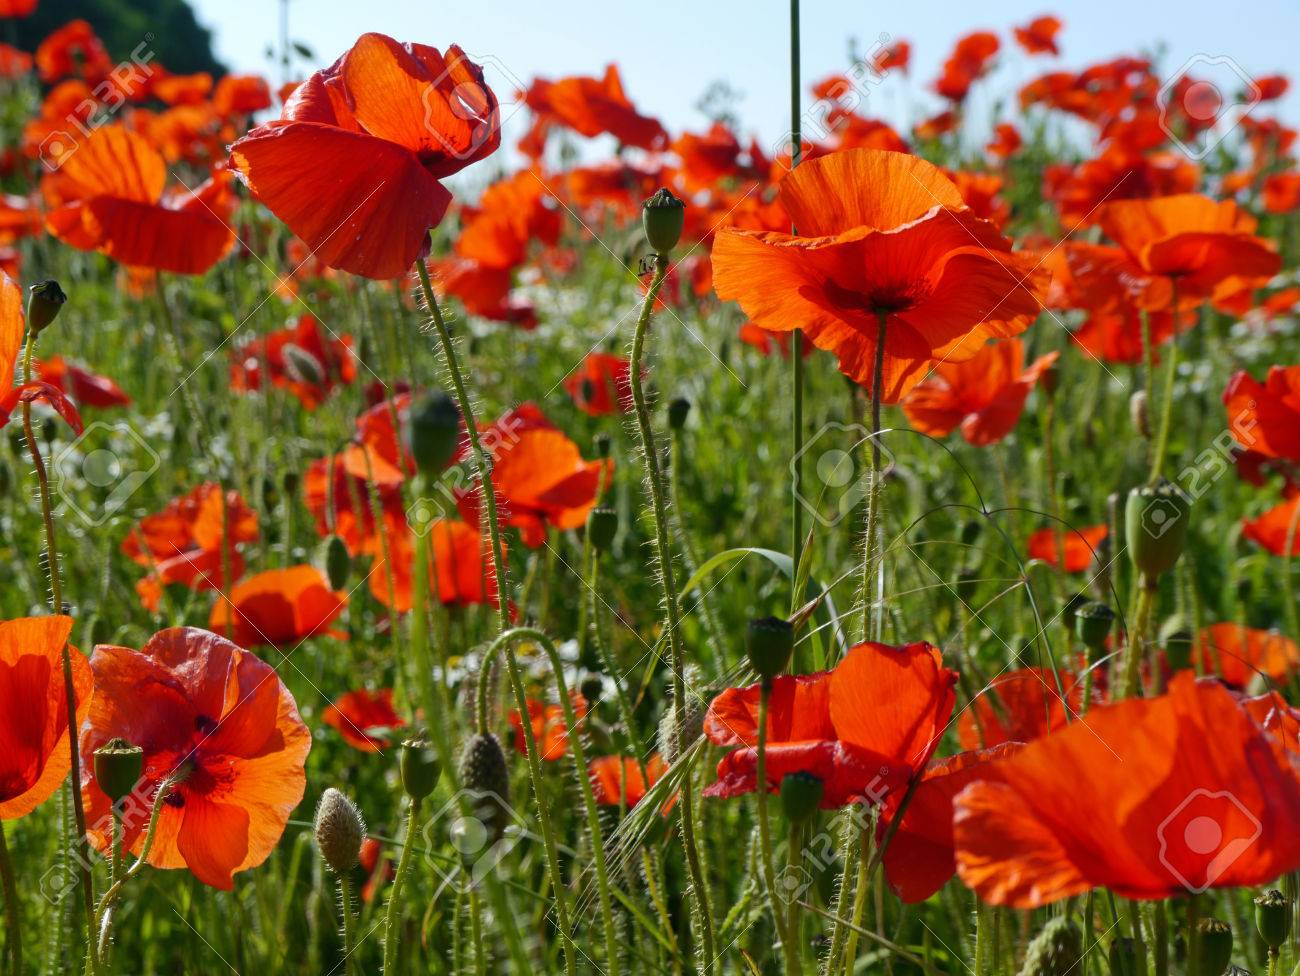 A meadow full of poppies and grasses in rural English countryside Standard-Bild - 82552567